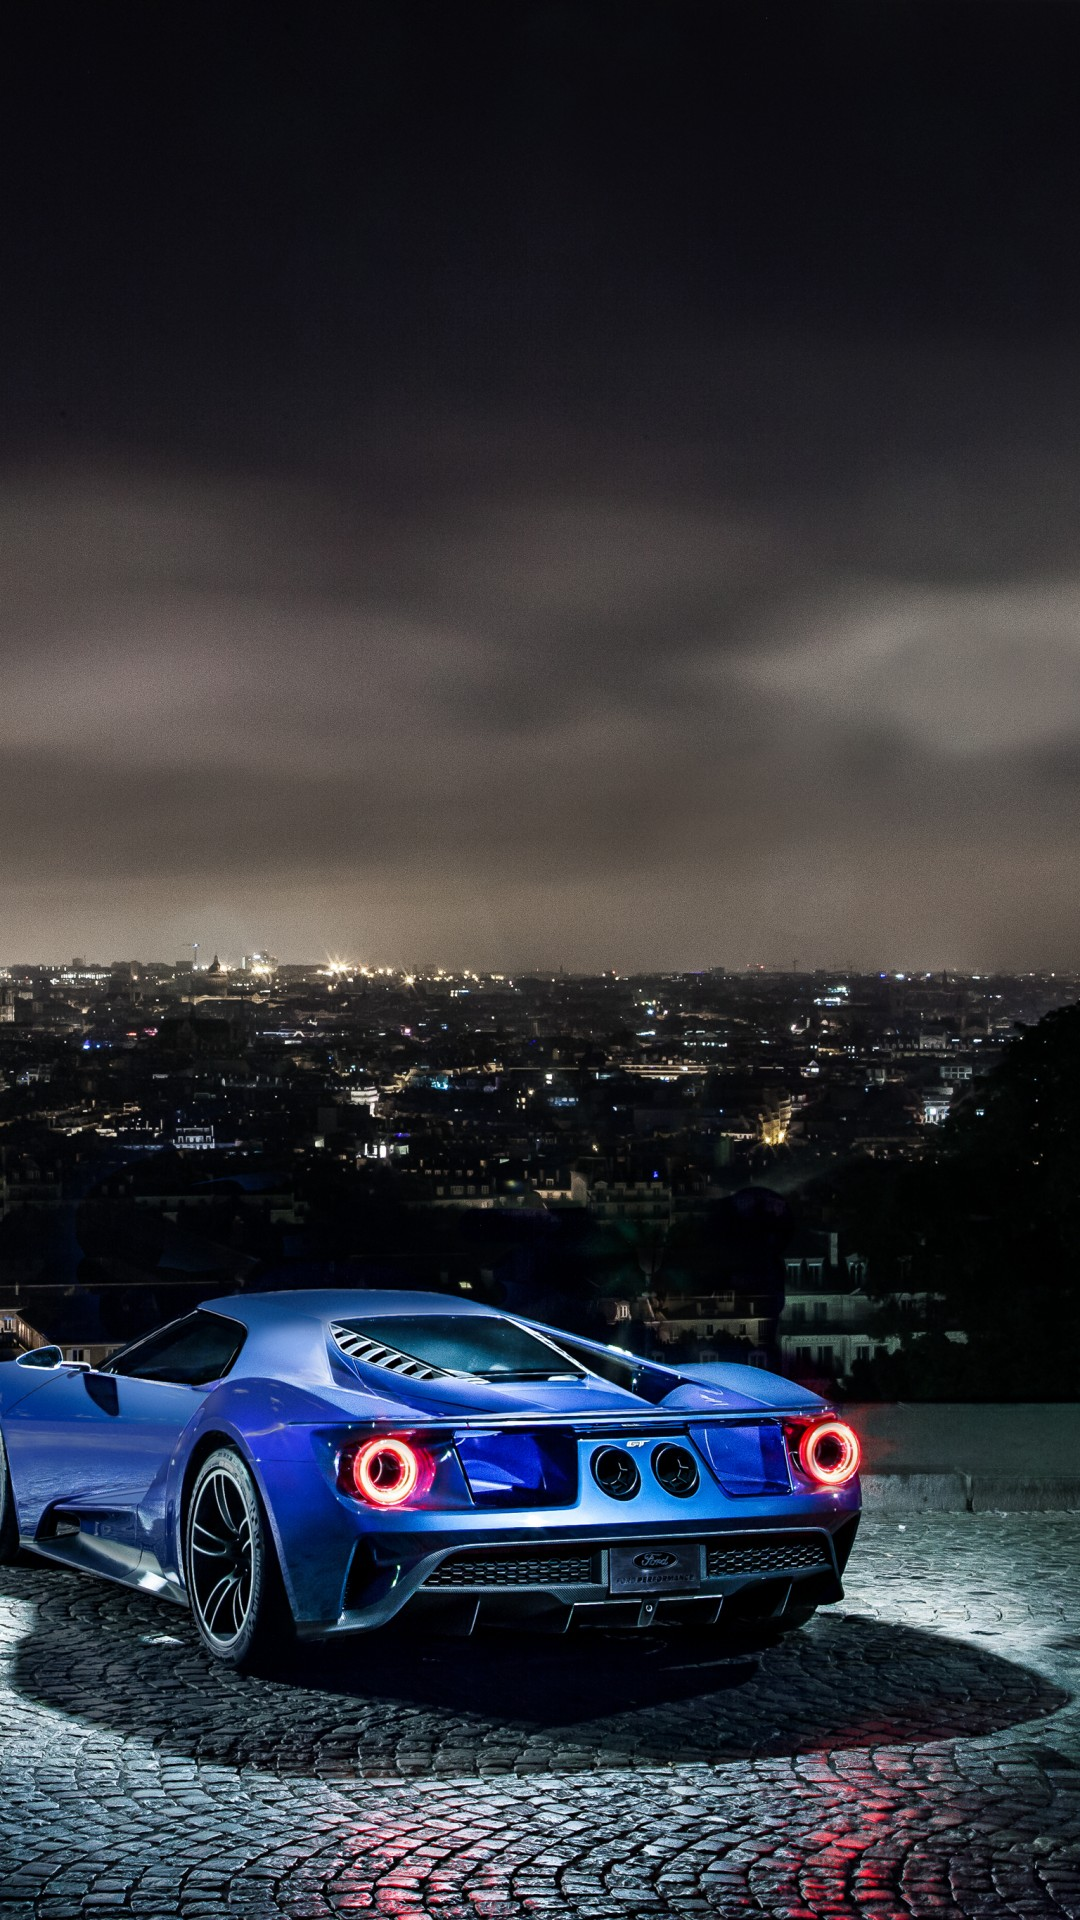 Camaro Vs Mustang >> Wallpaper Ford GT, supercar, concept, blue, sports car, luxury cars, test drive, Cars & Bikes #8041